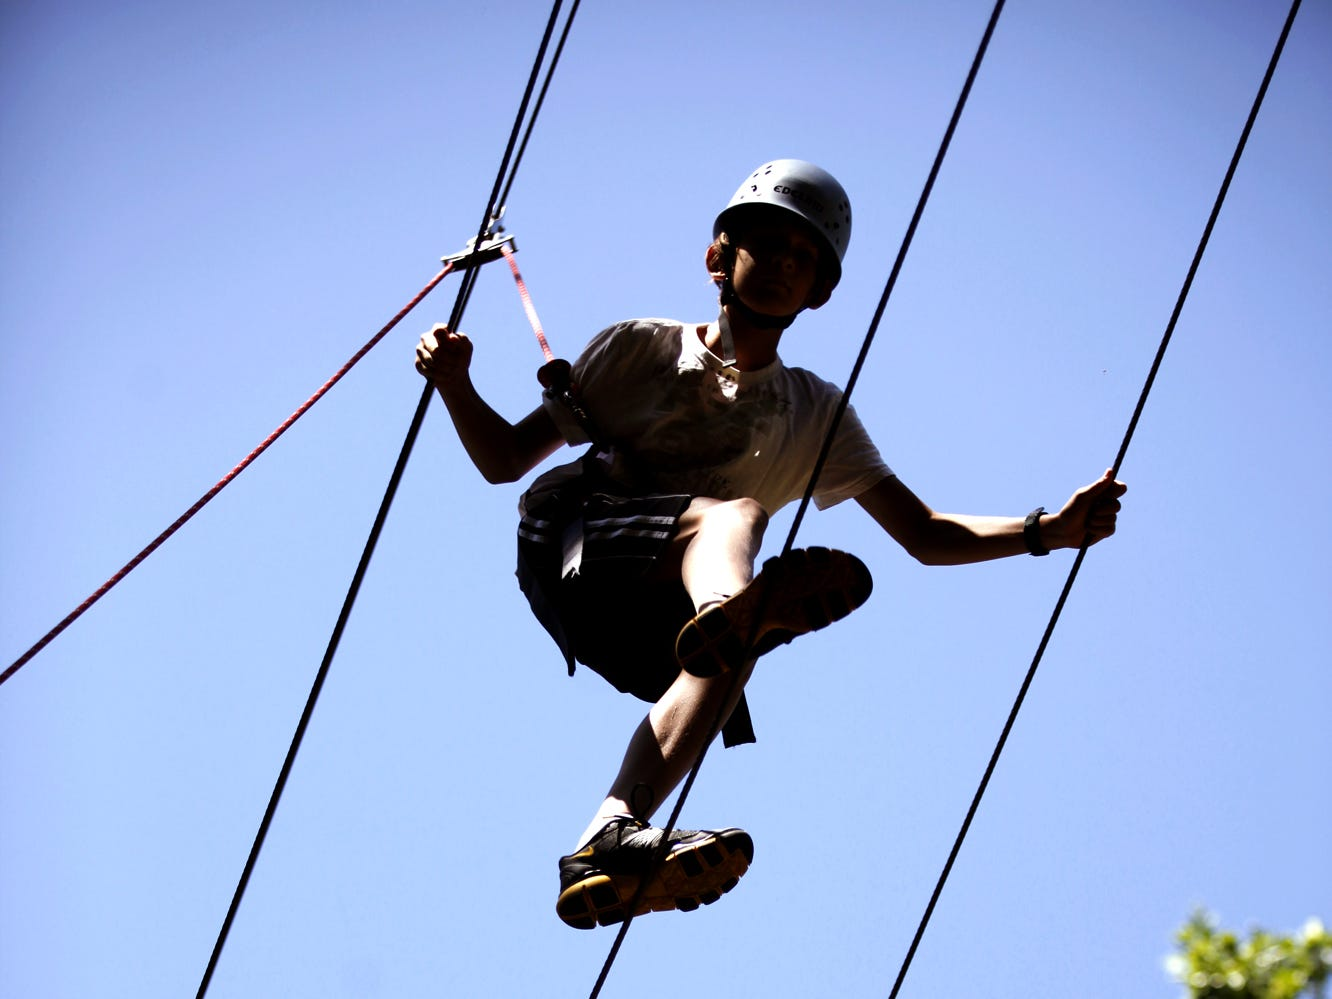 Simon Gorski, 12 of Harrisburg, does the cable walk at Roundtop Mountain Resort's high ropes course on Thursday, July 14, 2011.